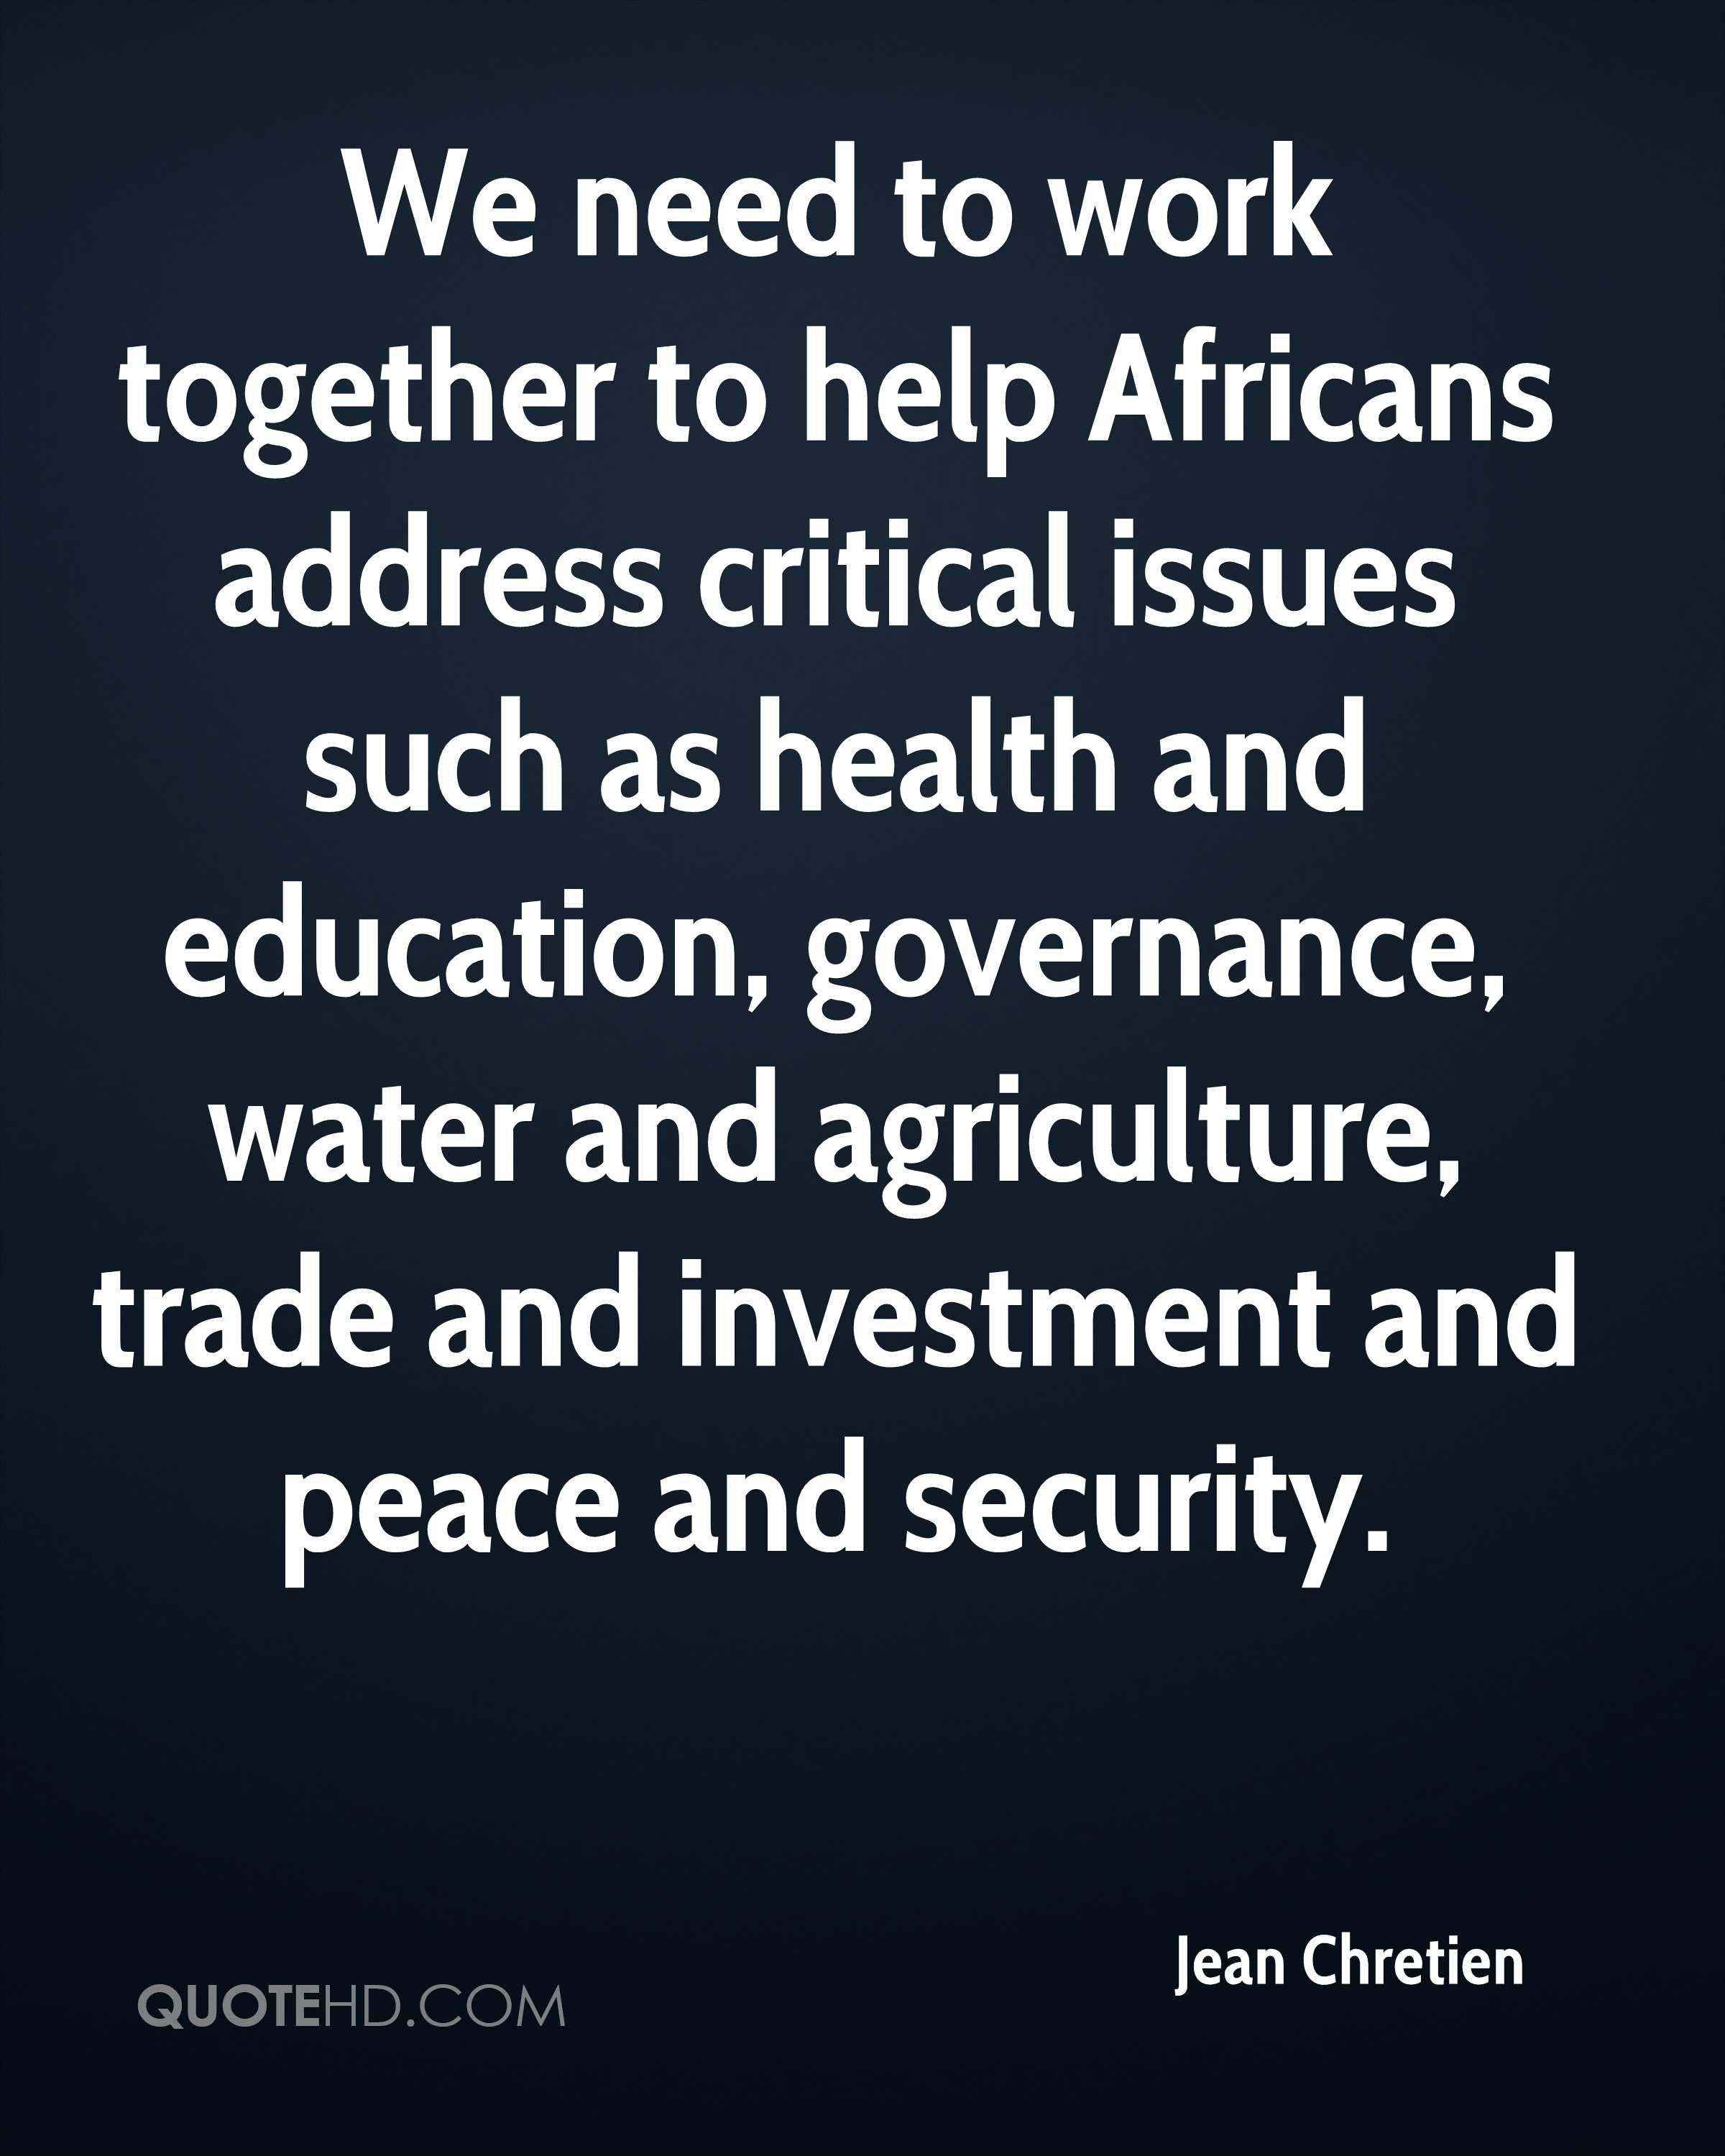 We need to work together to help Africans address critical issues such as health and education, governance, water and agriculture, trade and investment and peace and security.